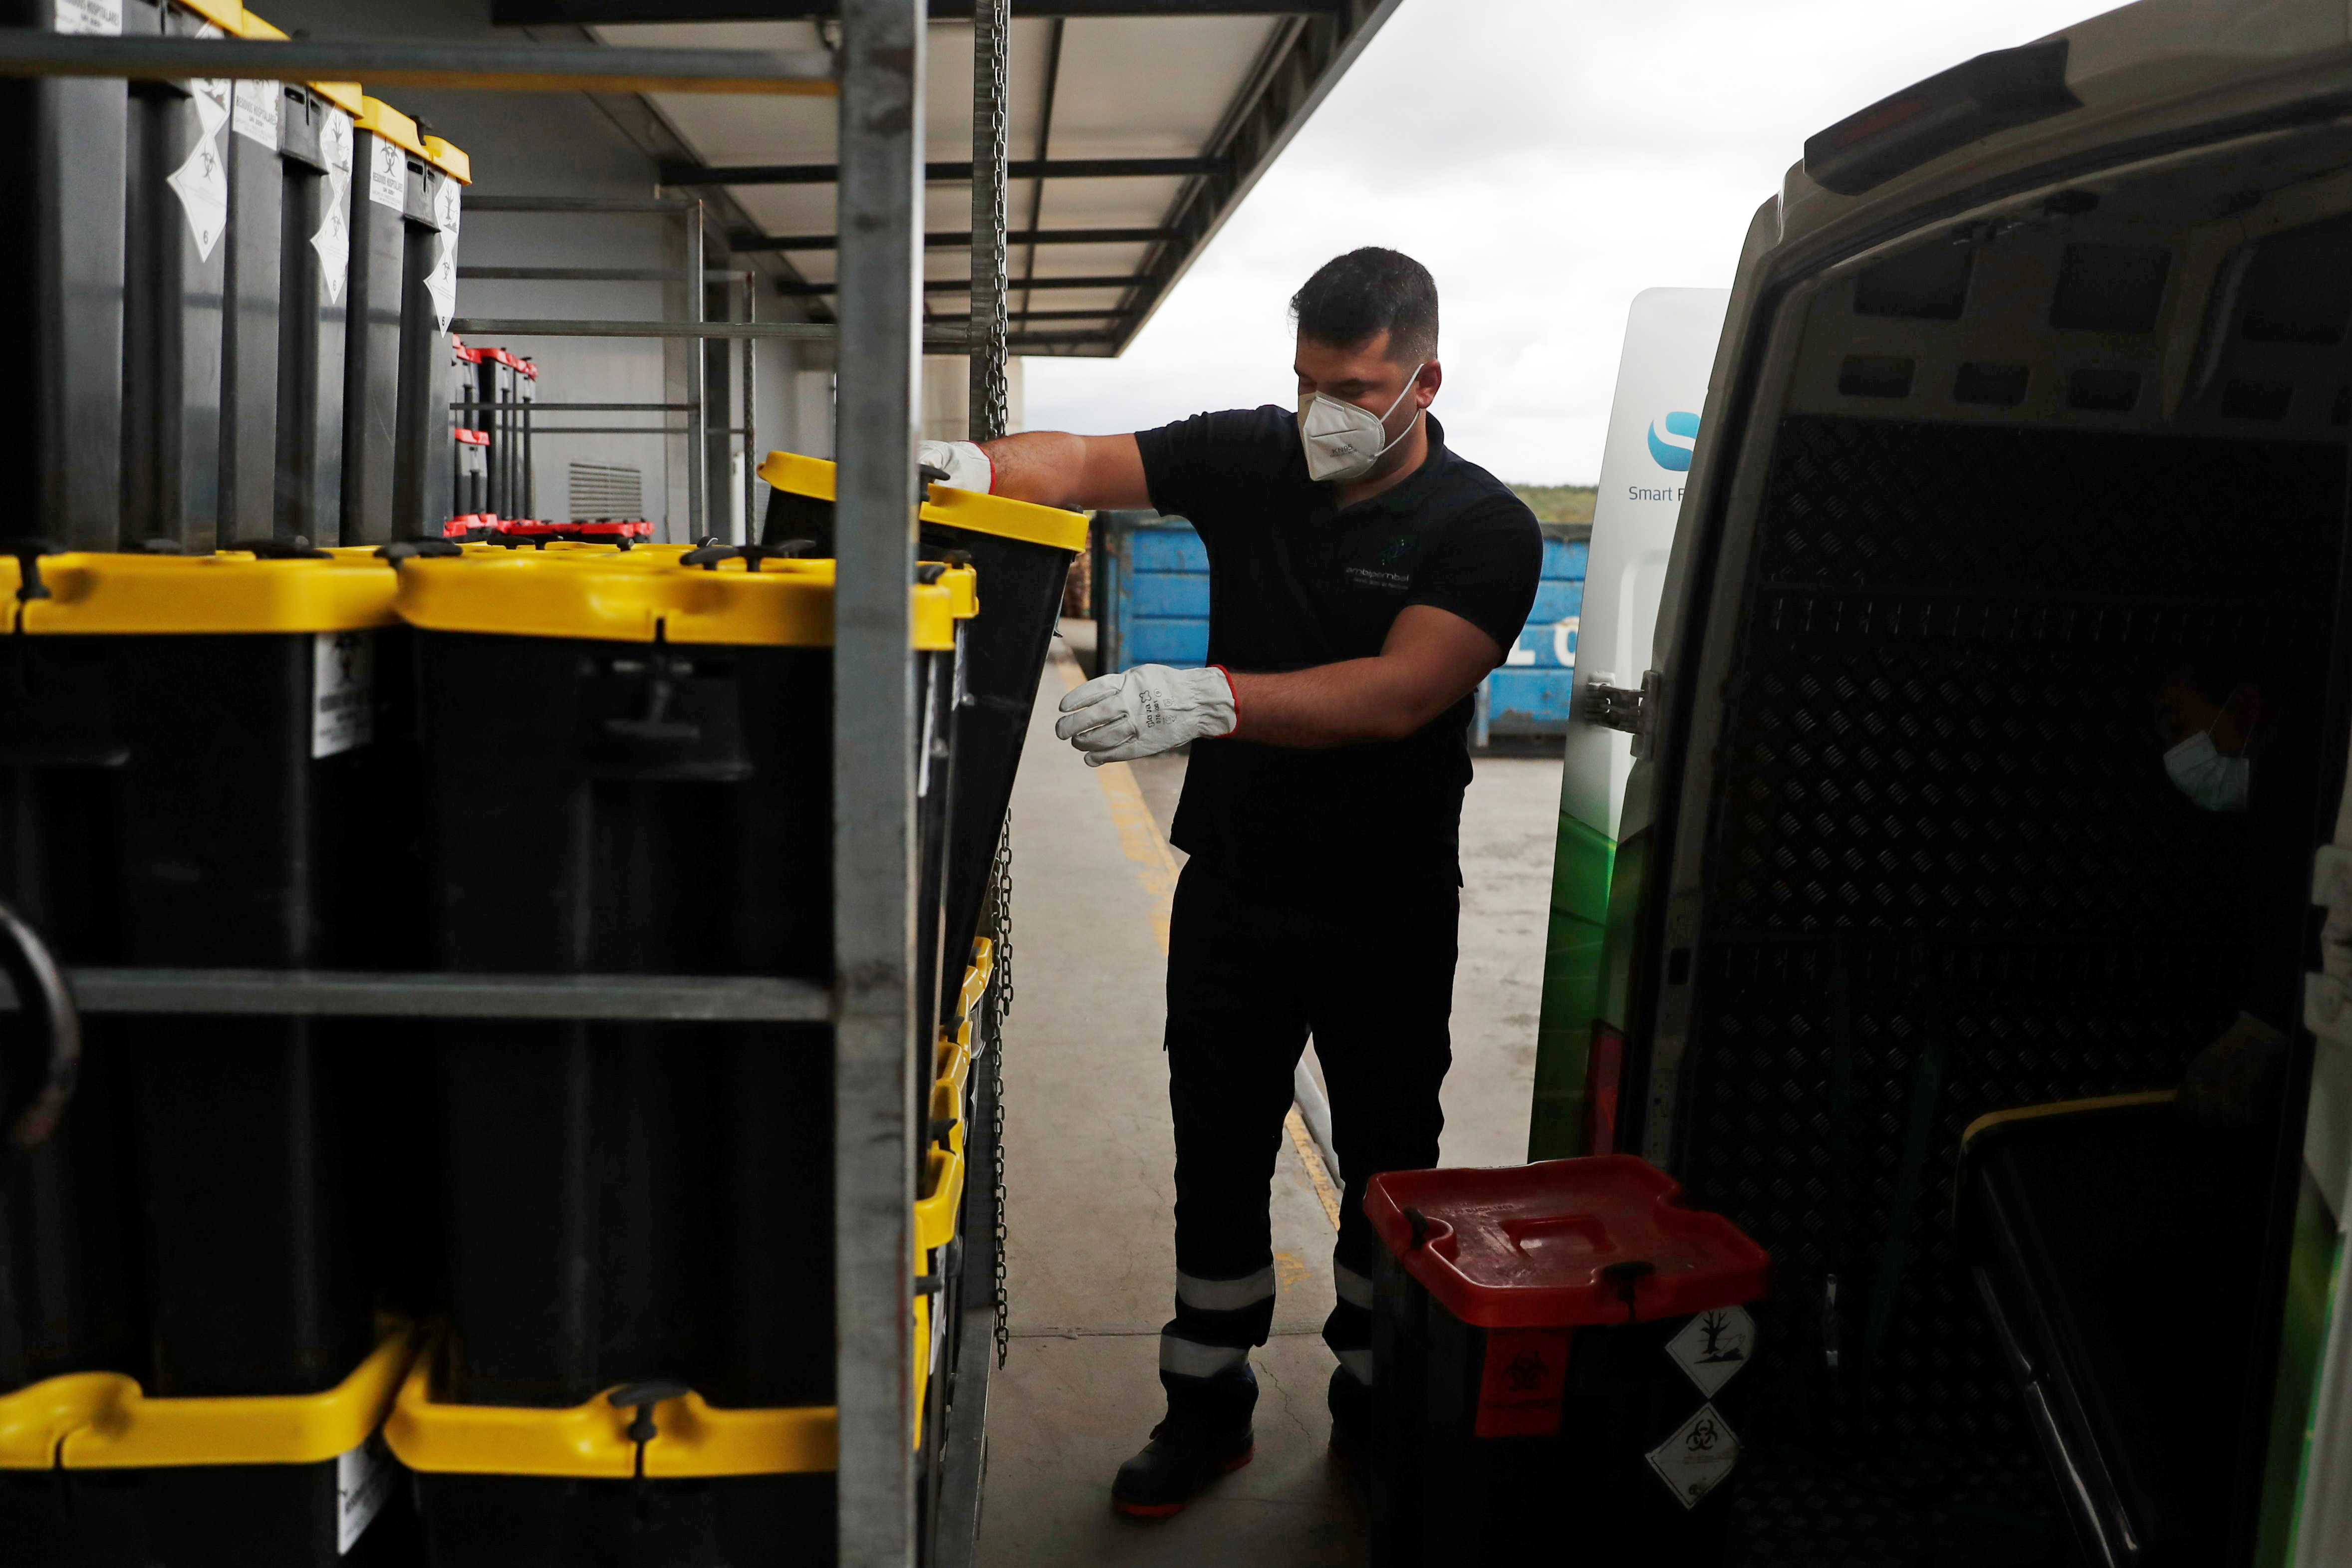 A worker removes containers with used supplies from COVID-19 vaccines and protective equipment from a truck to a pile in a waste treatment facility, amid the coronavirus disease (COVID-19) pandemic, in Chamusca, Santarem, Portugal, April 21, 2021.  REUTERS/Pedro Nunes